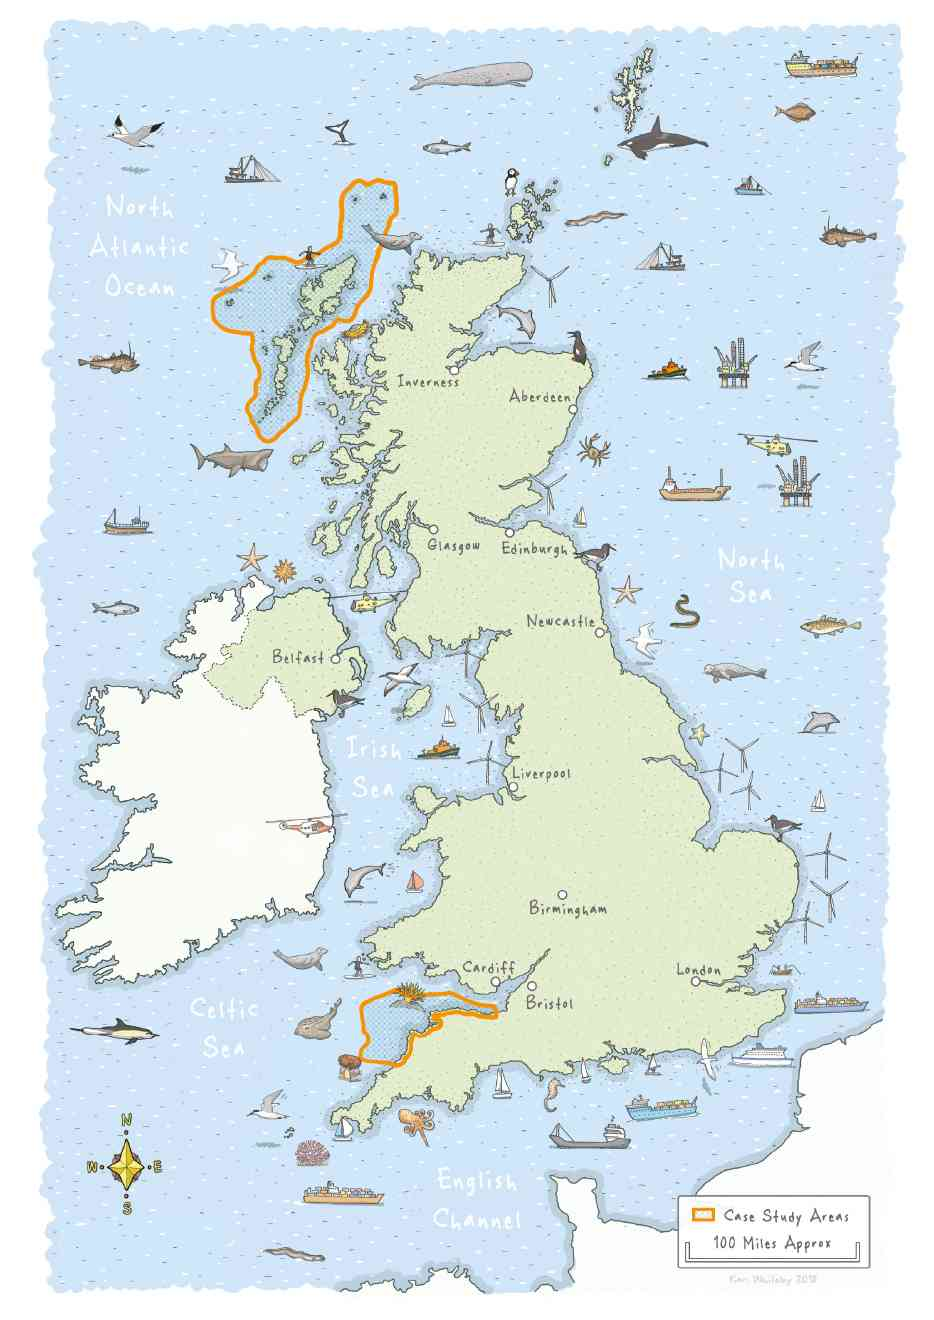 UK map showing North Dvon and Outer Hebrides Marine Protected Areas